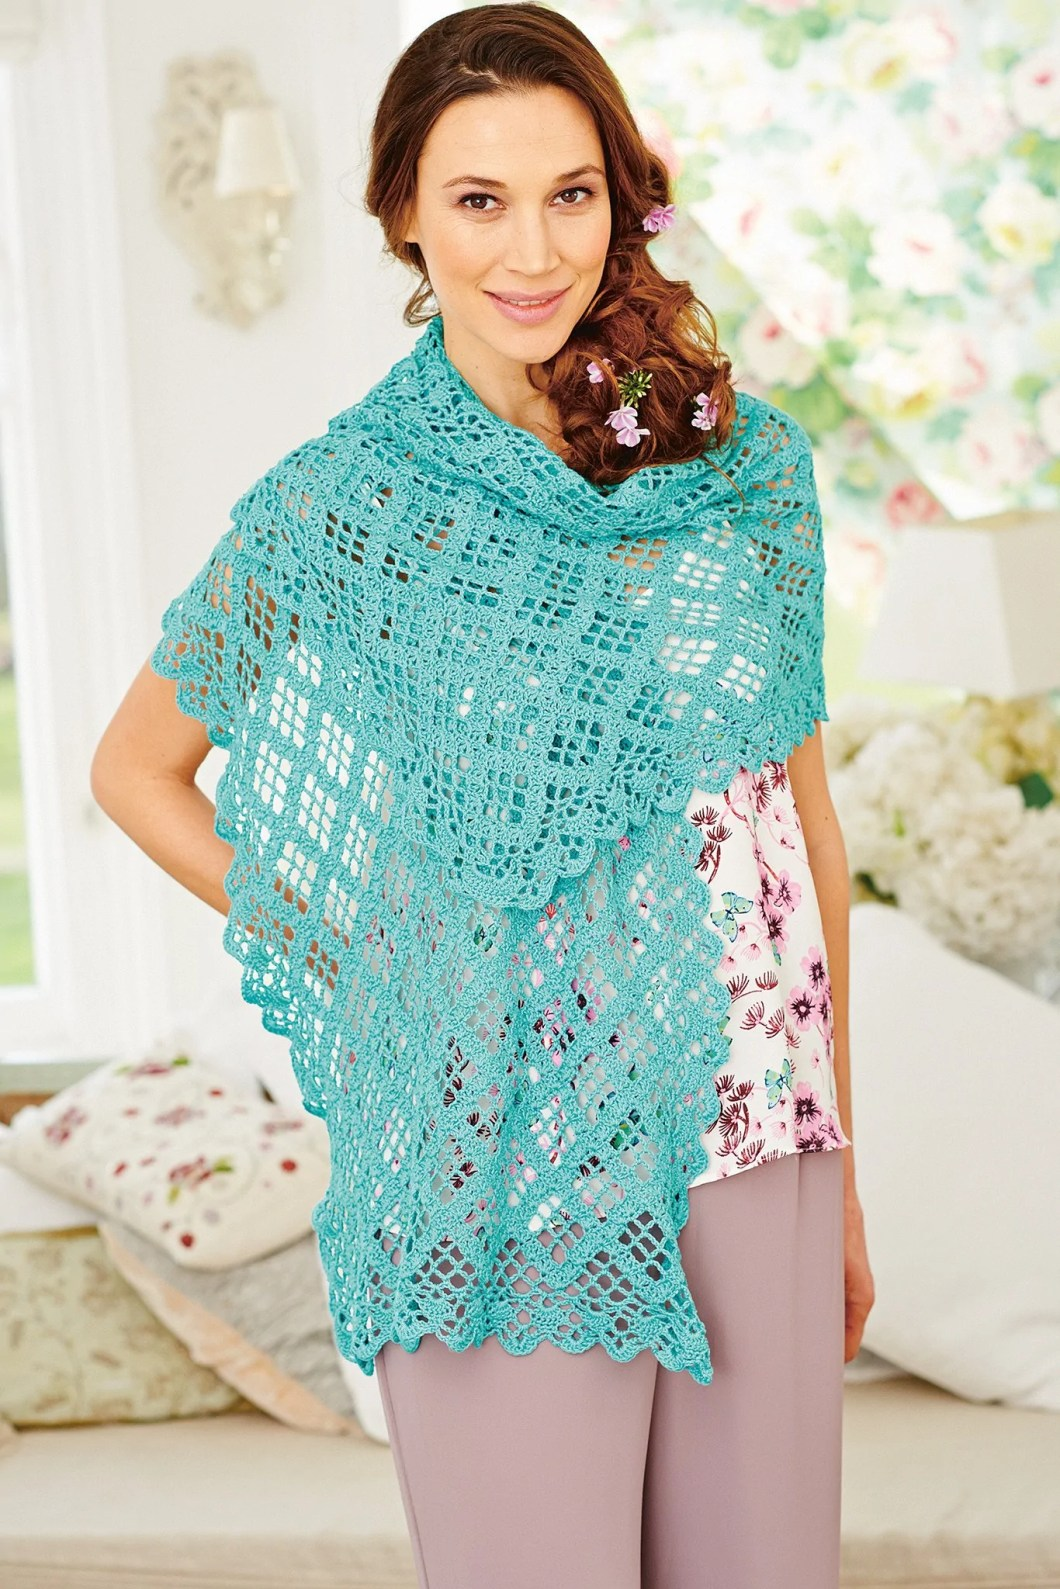 Summer Shawl Find Your World Silk Mohair Shawlette Allfreecrochetcom Crochet Pattern The Knitting Network